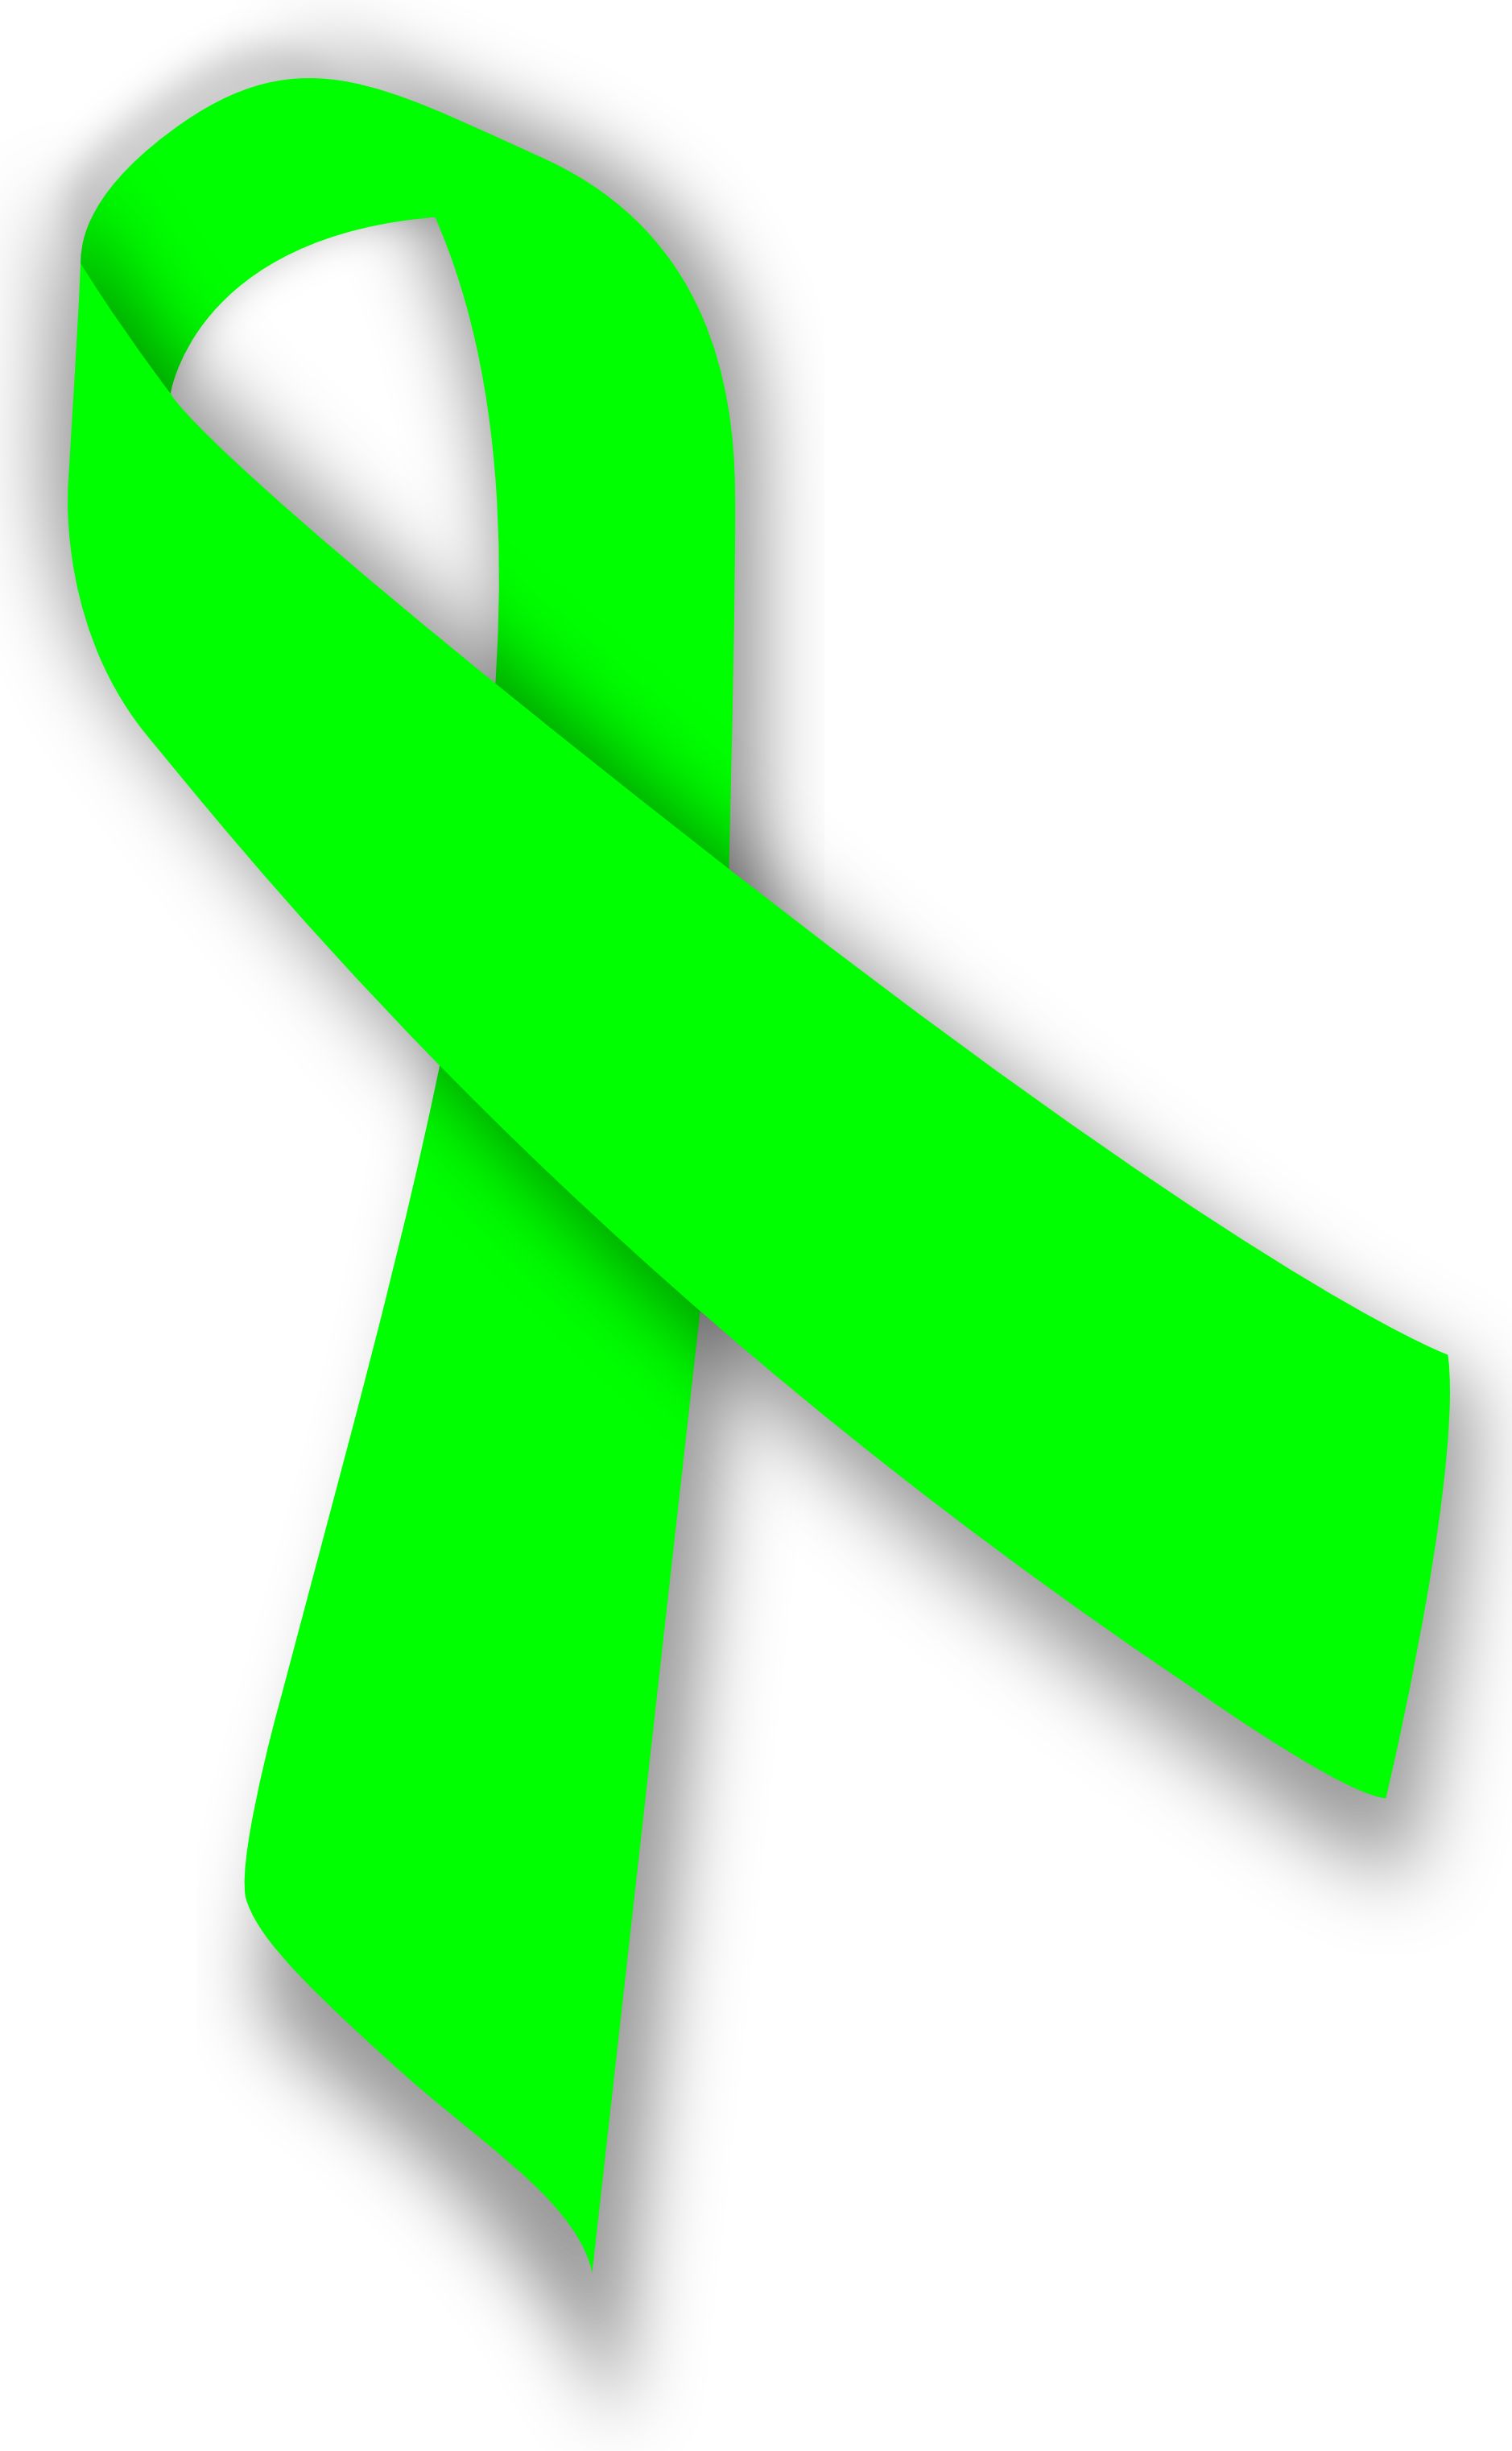 Cancer Ribbons Clipart Free Download Best Cancer Ribbons Clipart